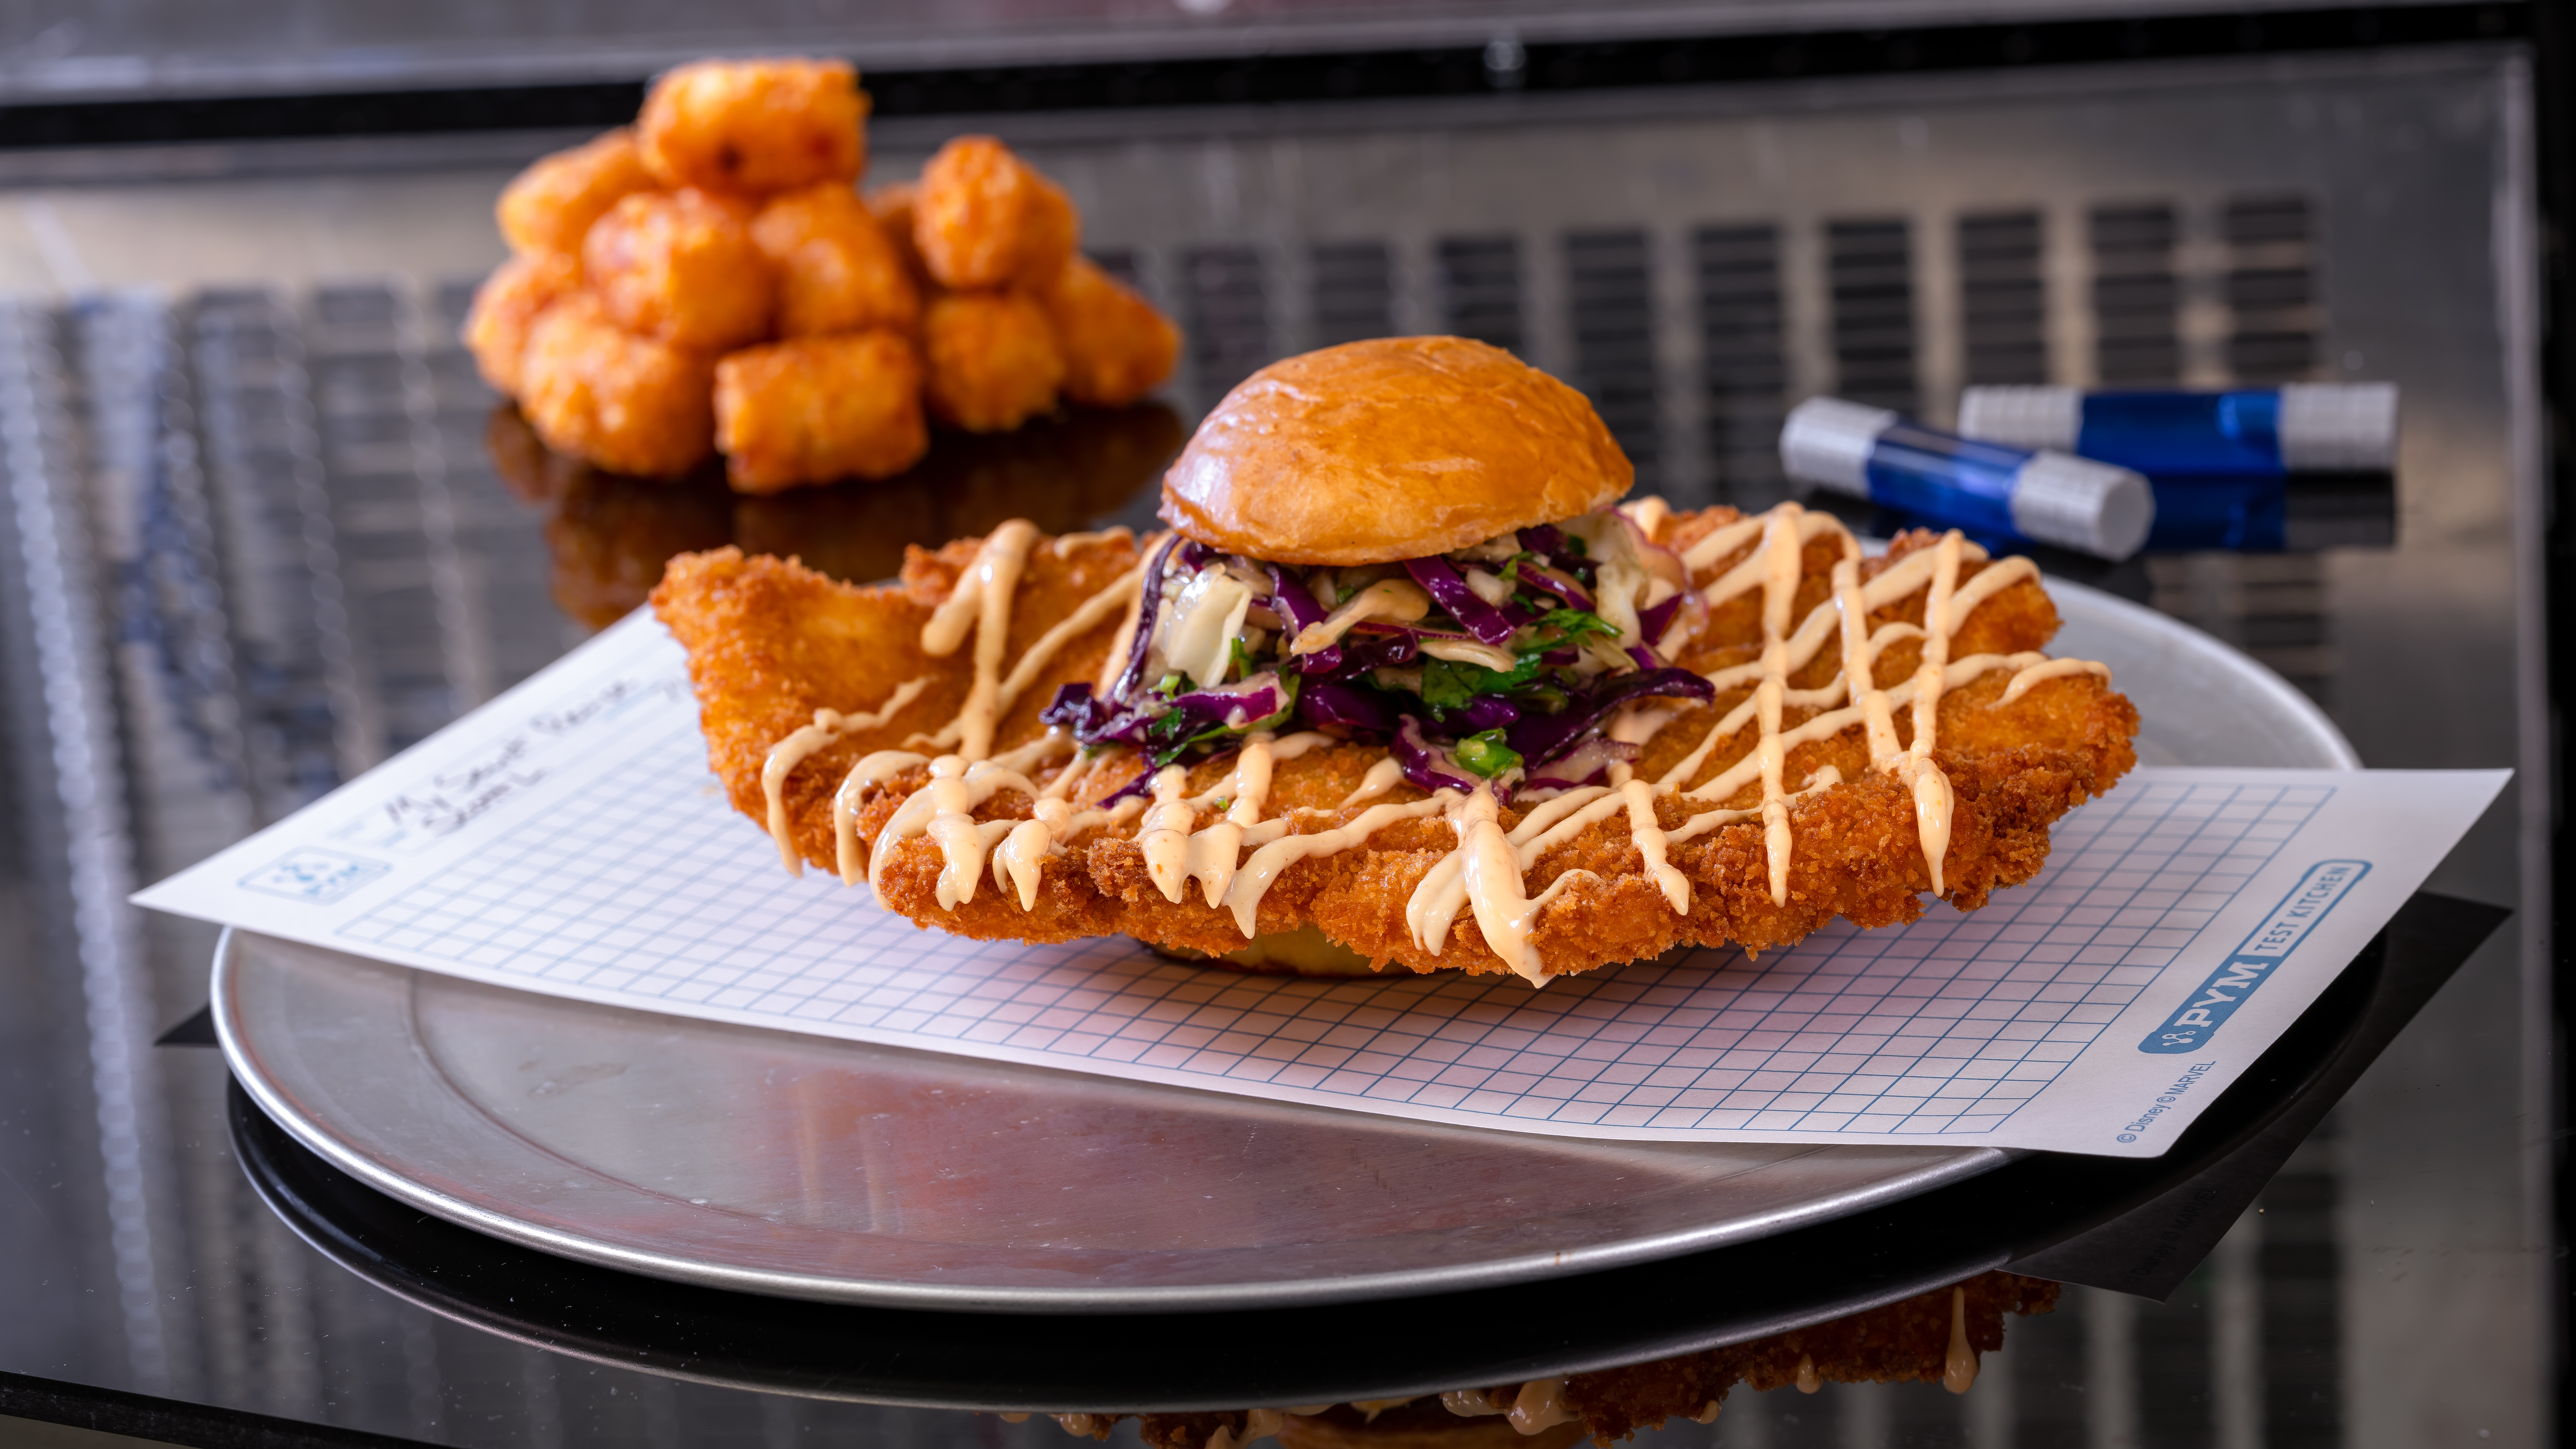 A giant fried chicken patty hangs out of the sides of a small bun sandwich with tater tots on the side